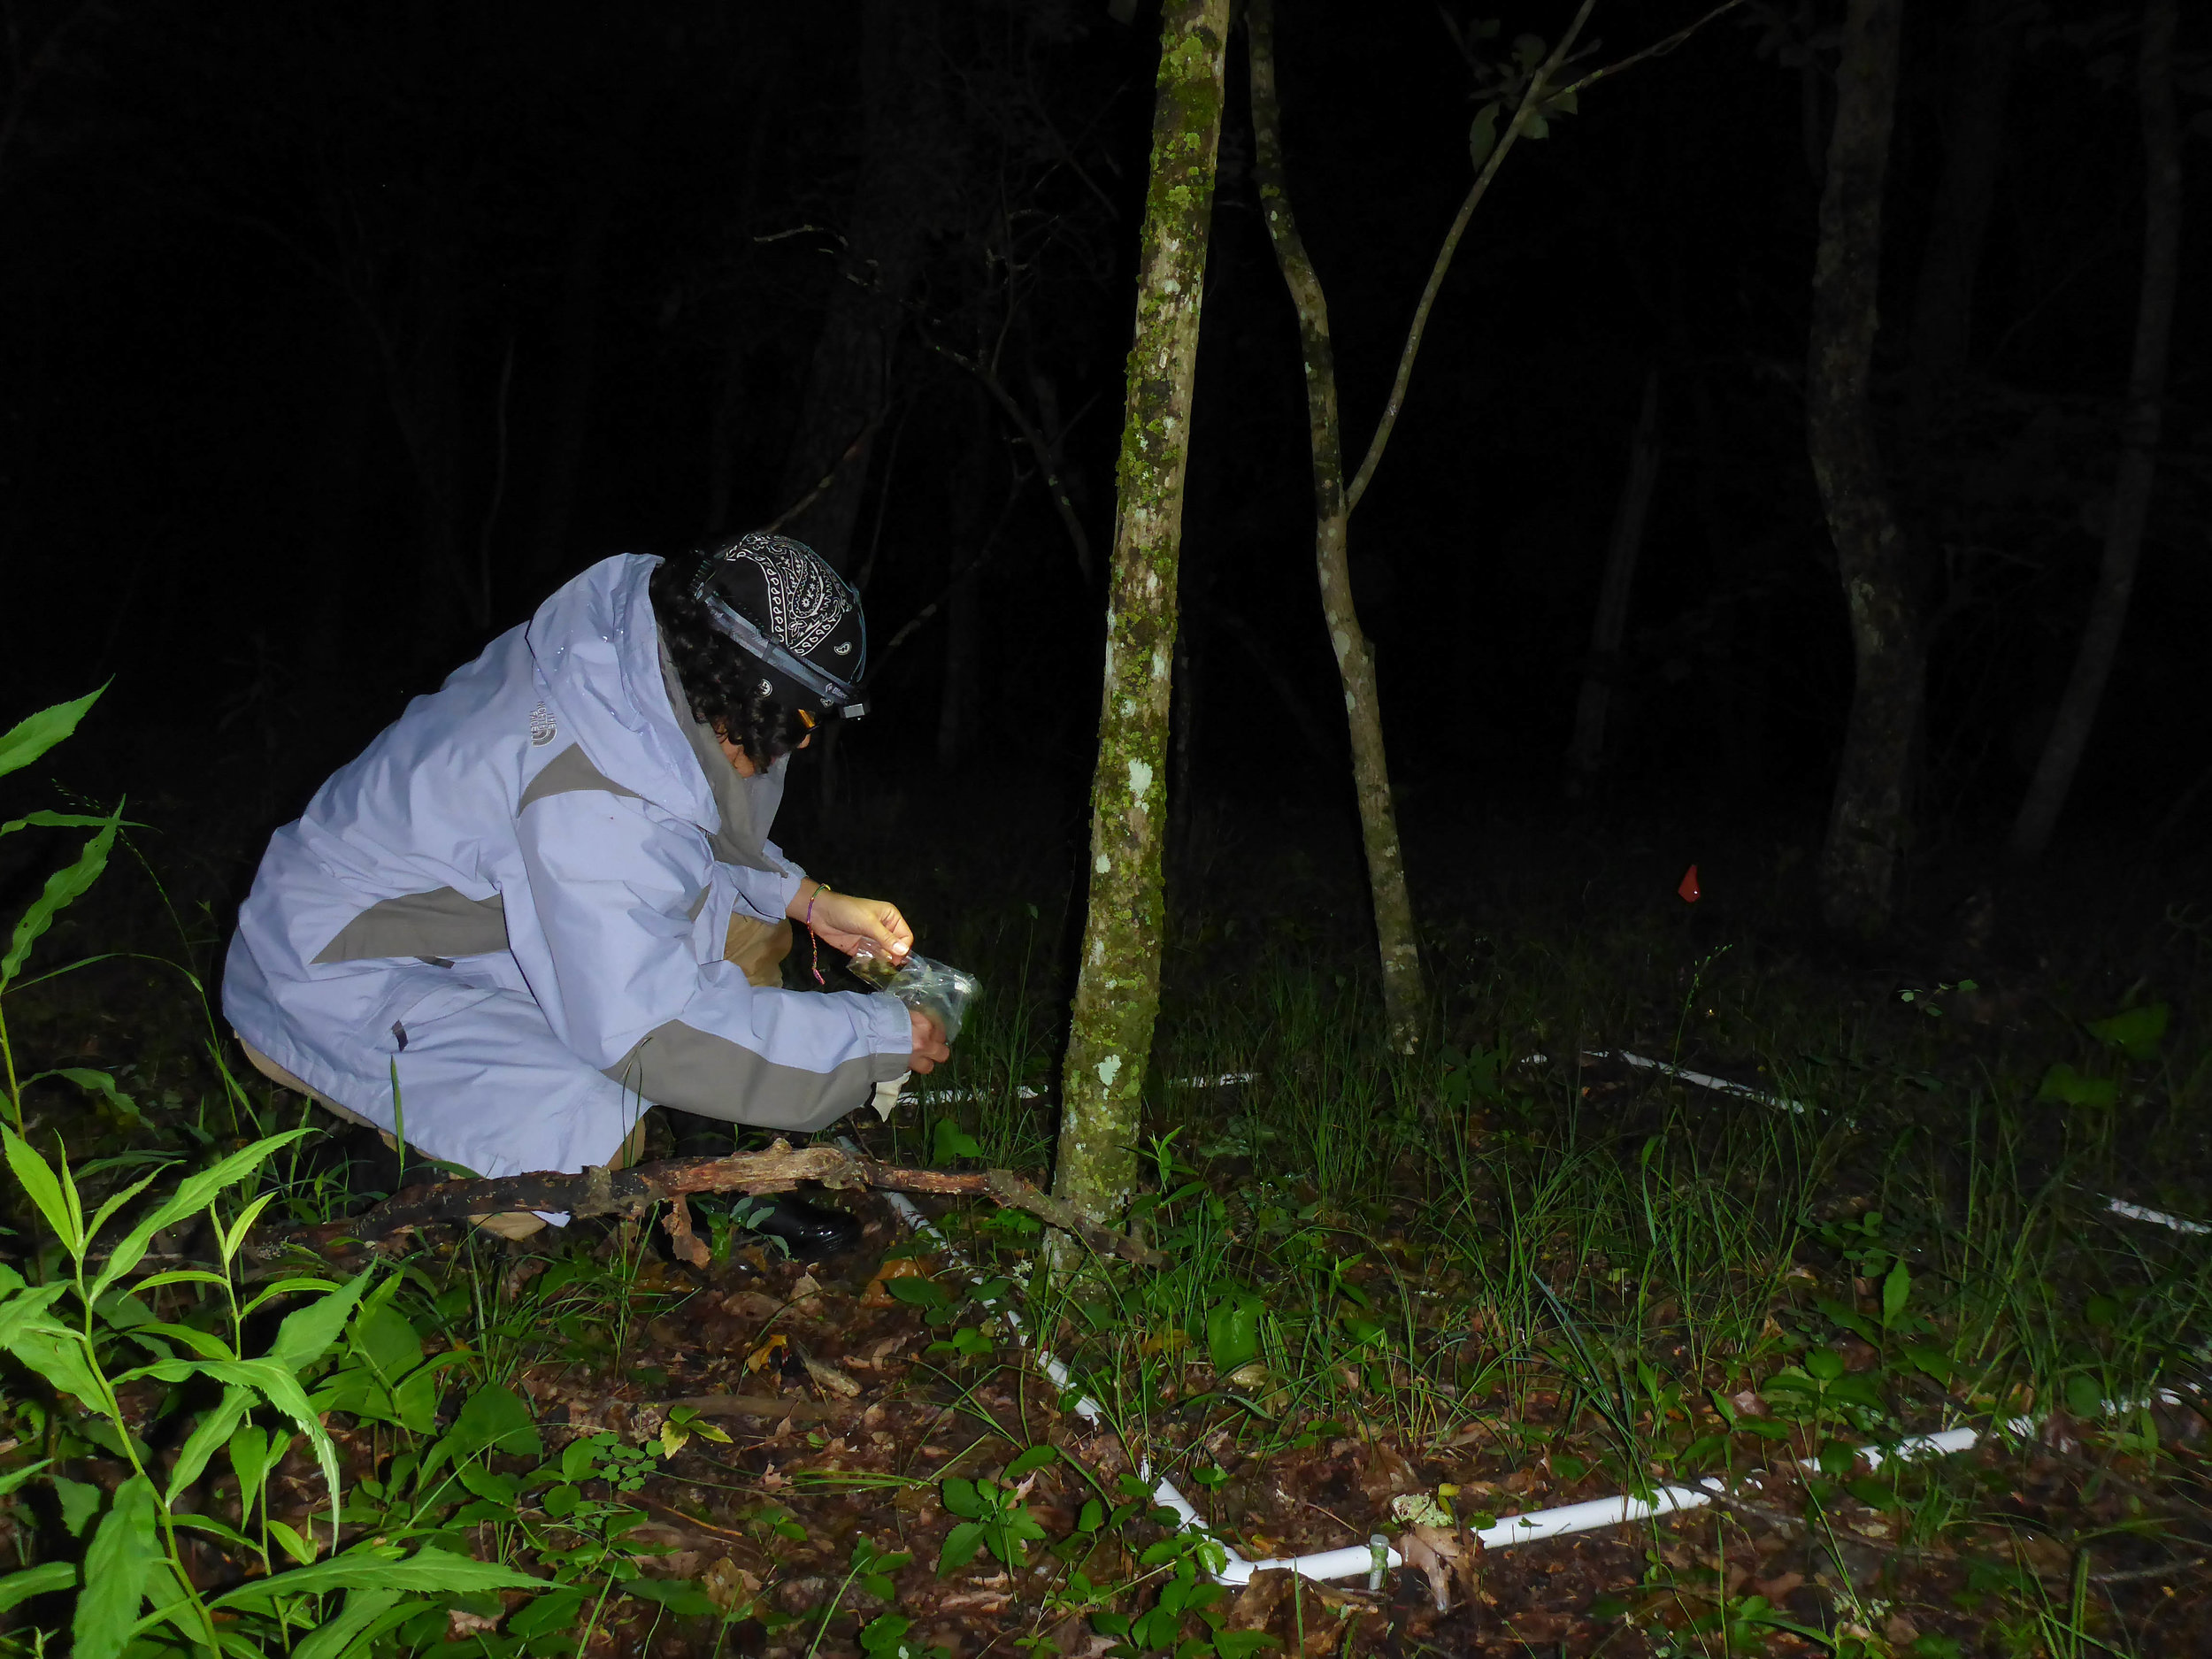 Osmary collecting salamanders for mark-recapture